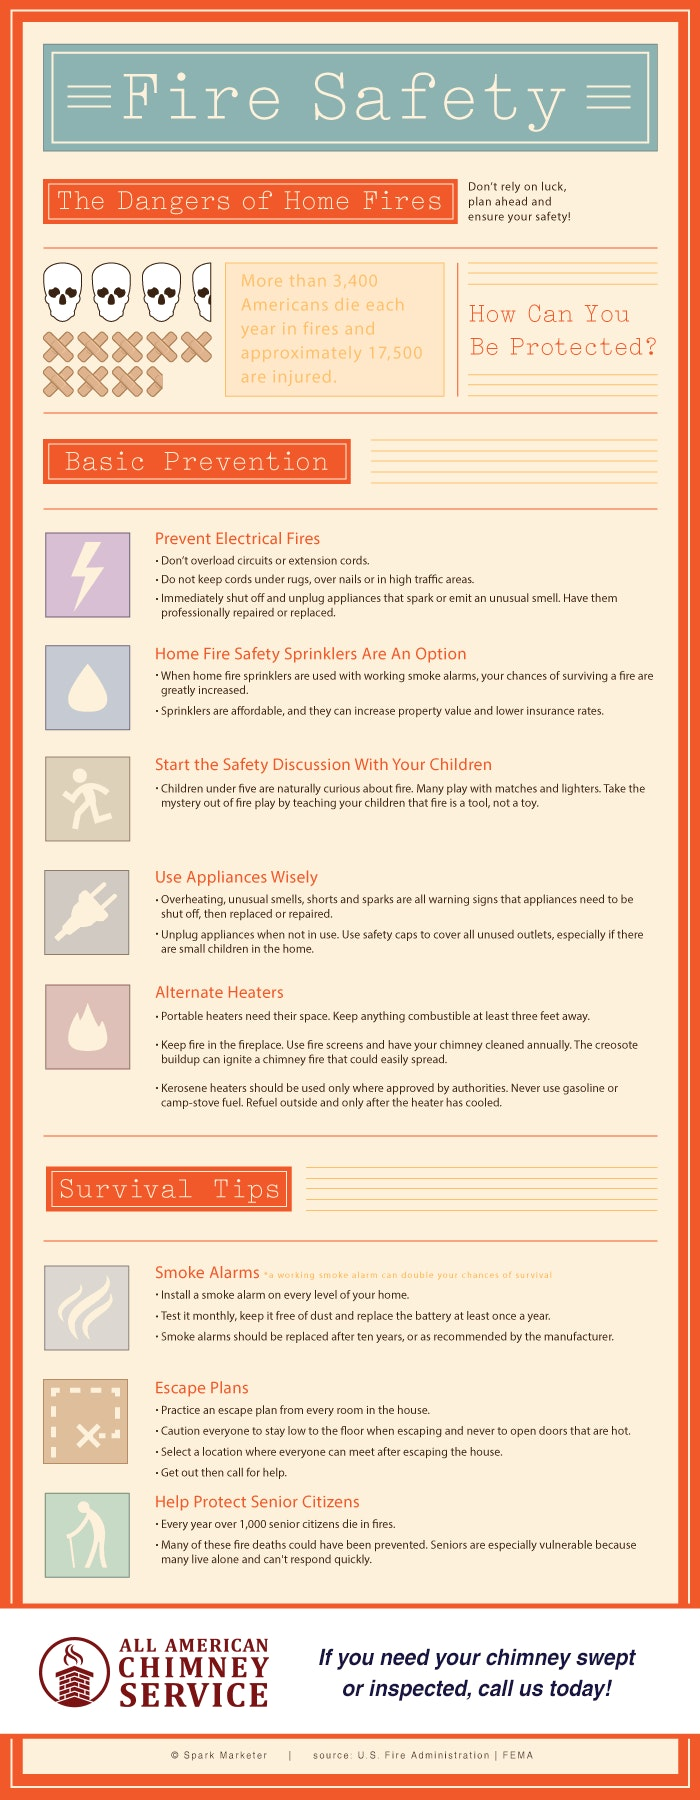 Fire Safety Infographic Louisville Ky All American Chimney Service